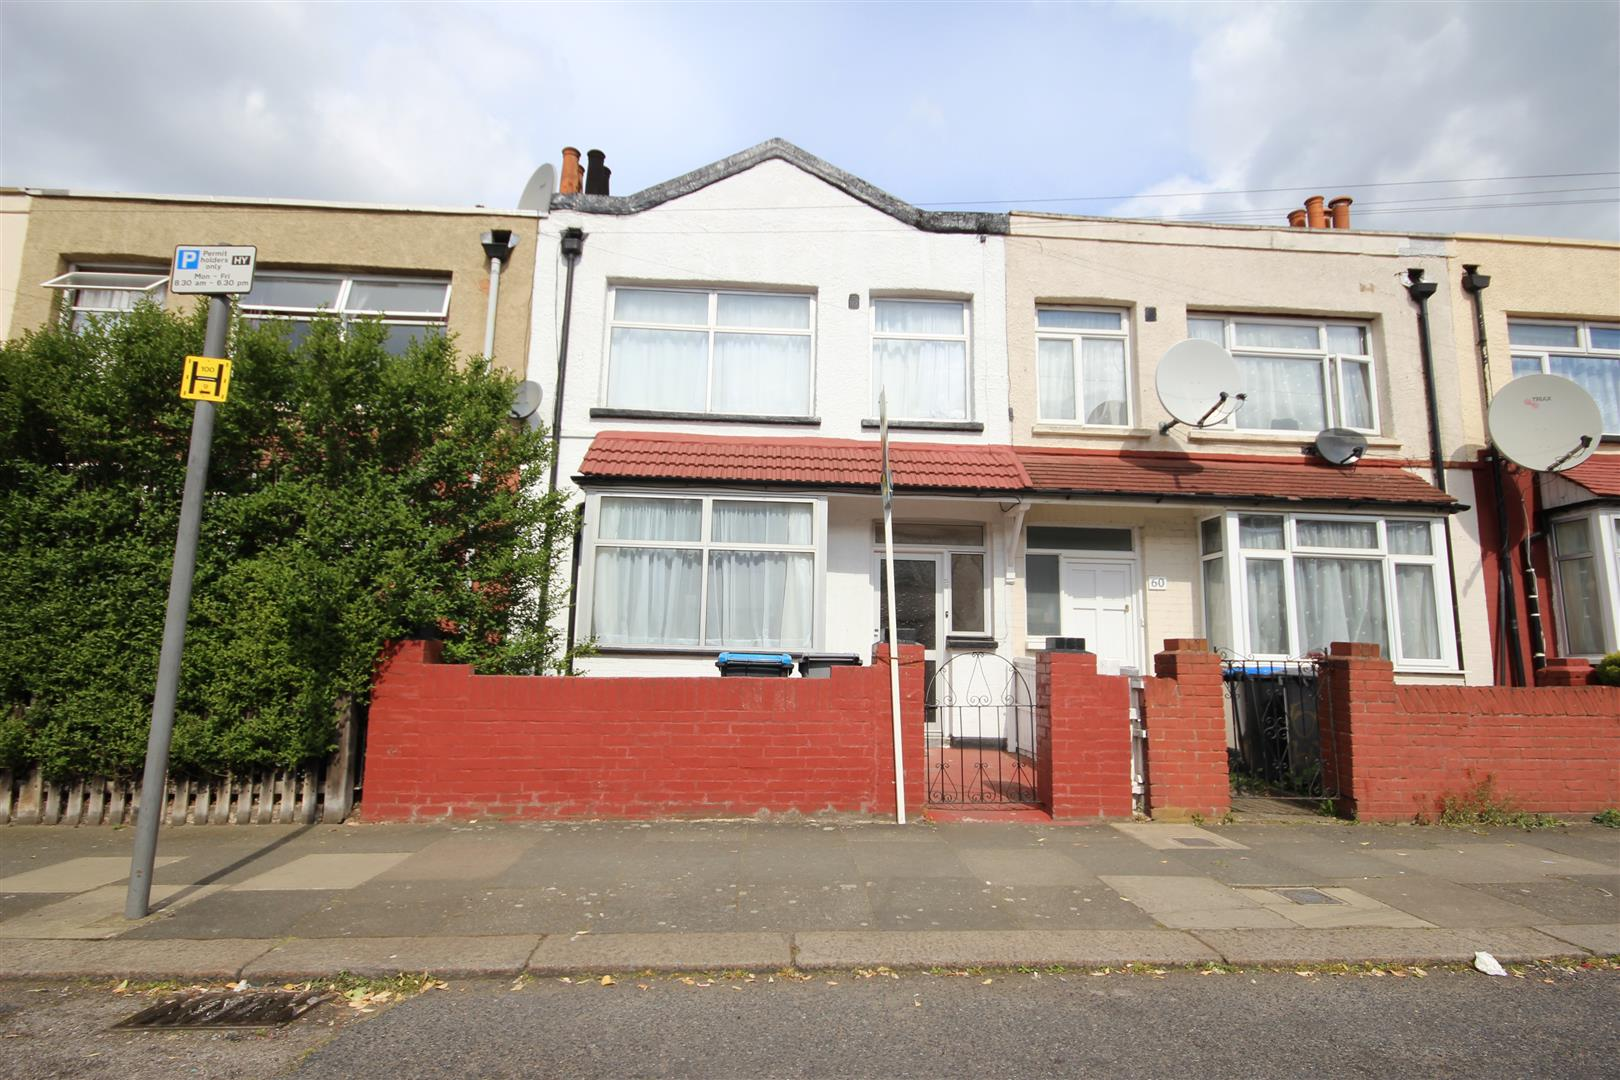 House for sale in Yewfield Road, London